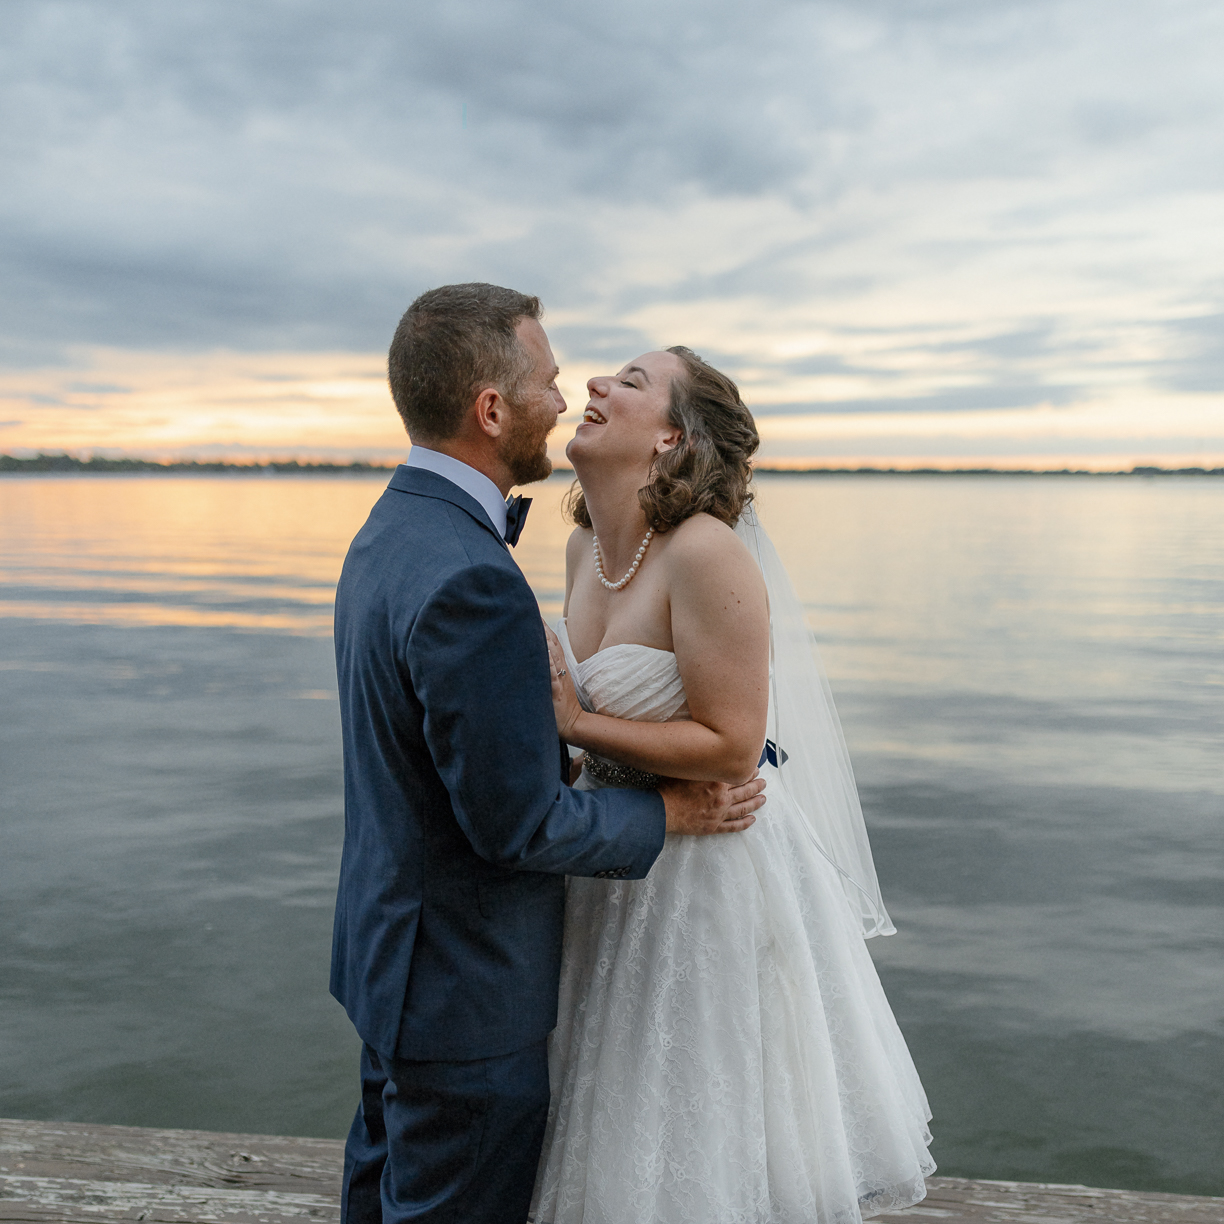 Sunet wedding photo